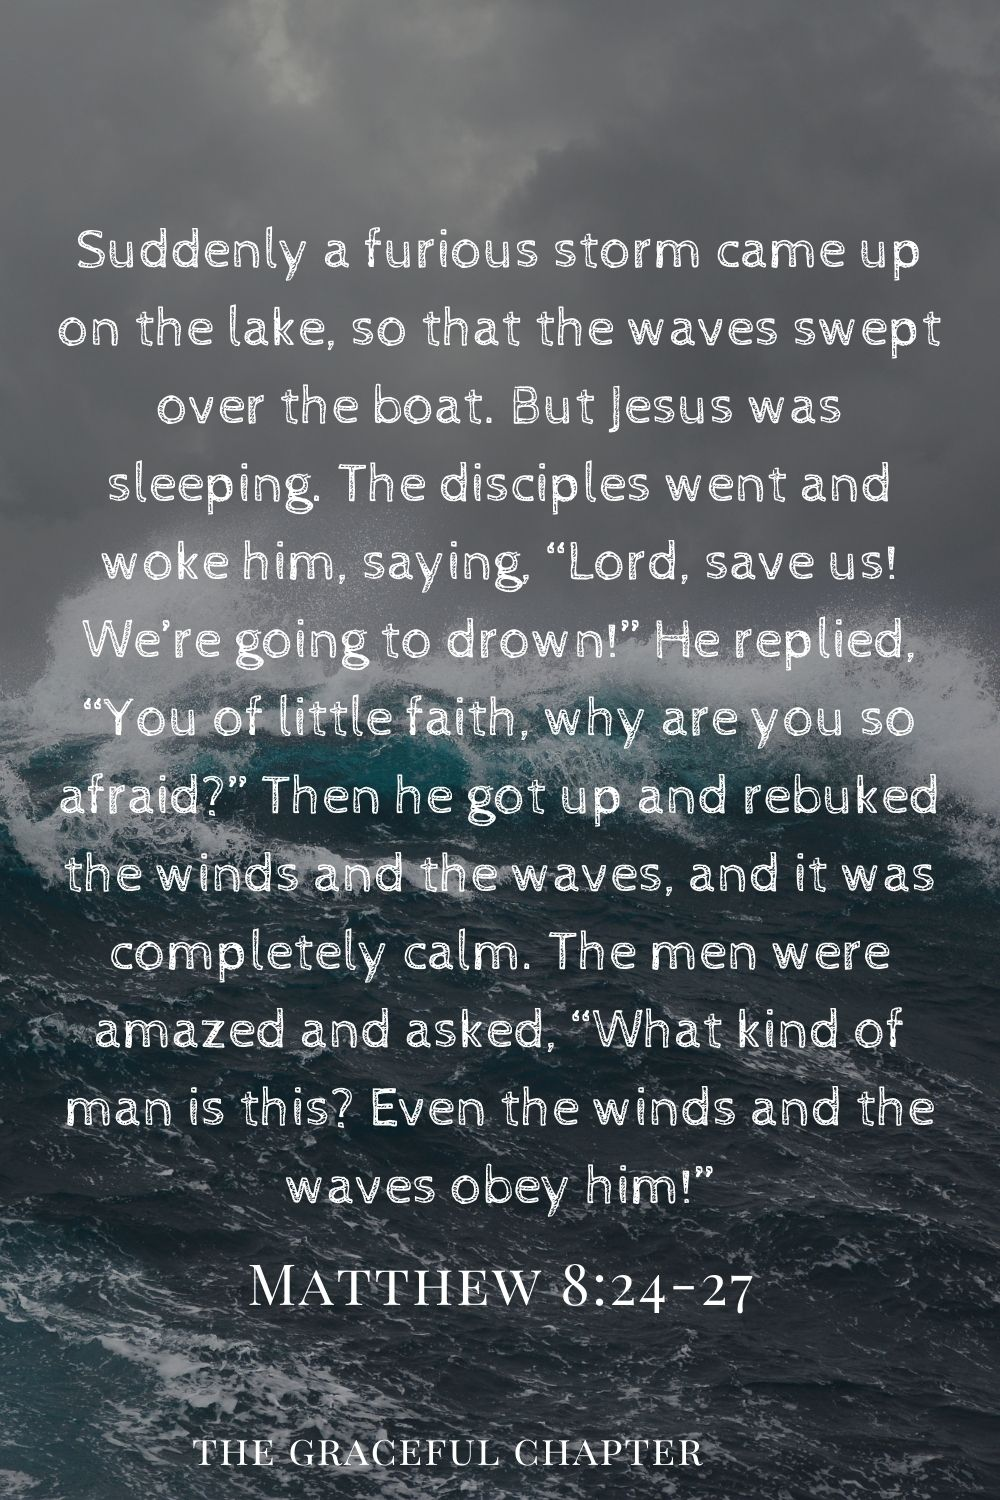 """Suddenly a furious storm came up on the lake so that the waves swept over the boat. But Jesus was sleeping.The disciples went and woke him, saying, """"Lord, save us! We're going to drown!"""" He replied, """"You of little faith, why are you so afraid?"""" Then he got up and rebuked the winds and the waves, and it was completely calm. The men were amazed and asked, """"What kind of man is this? Even the winds and the waves obey him!"""" Matthew 8:24-27"""